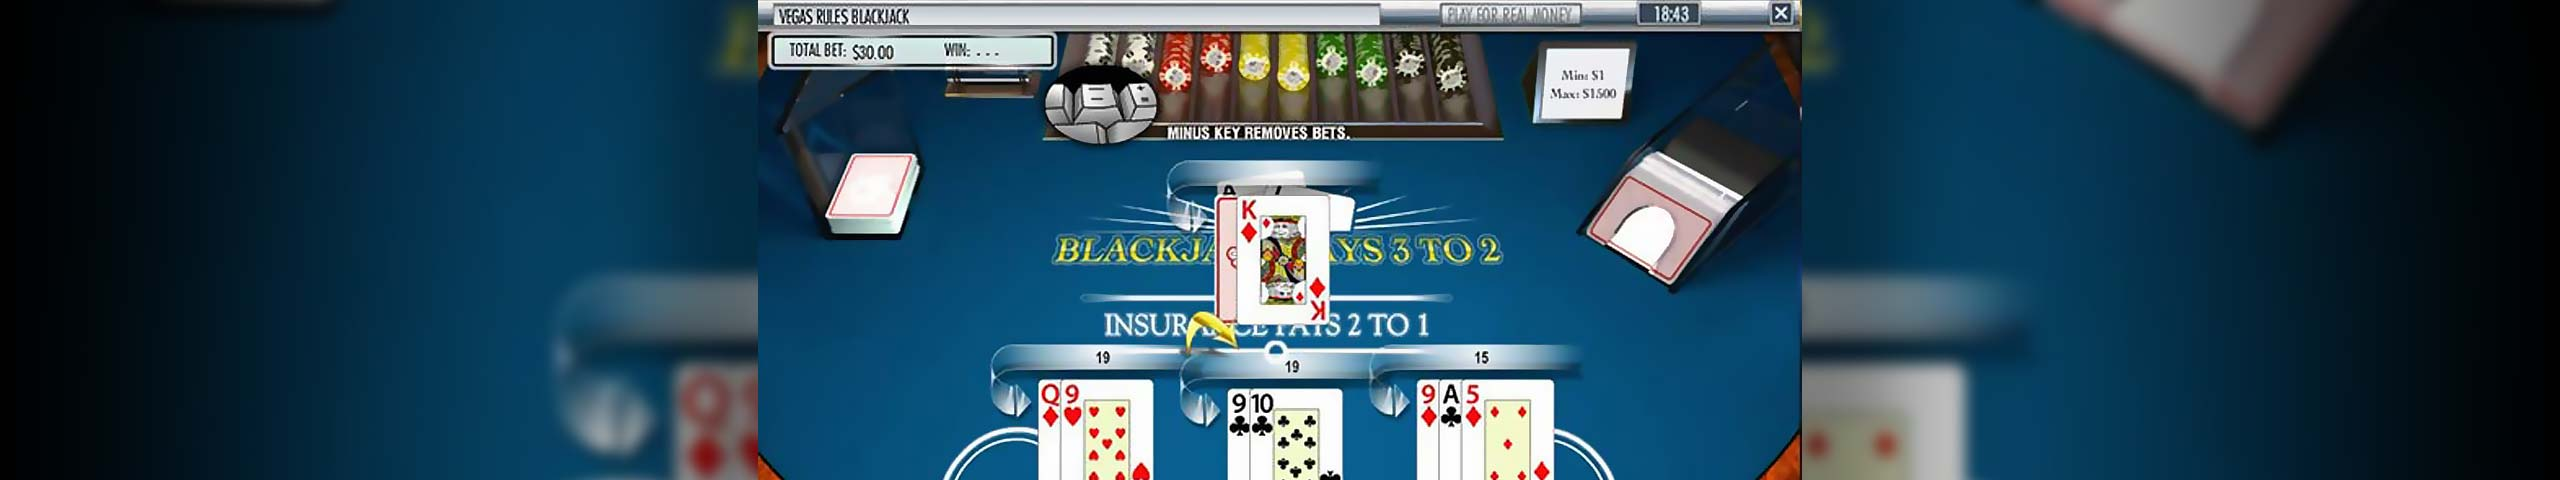 Blackjack Multi-hand Blackjack, Rival Slider - Himmelspill.com